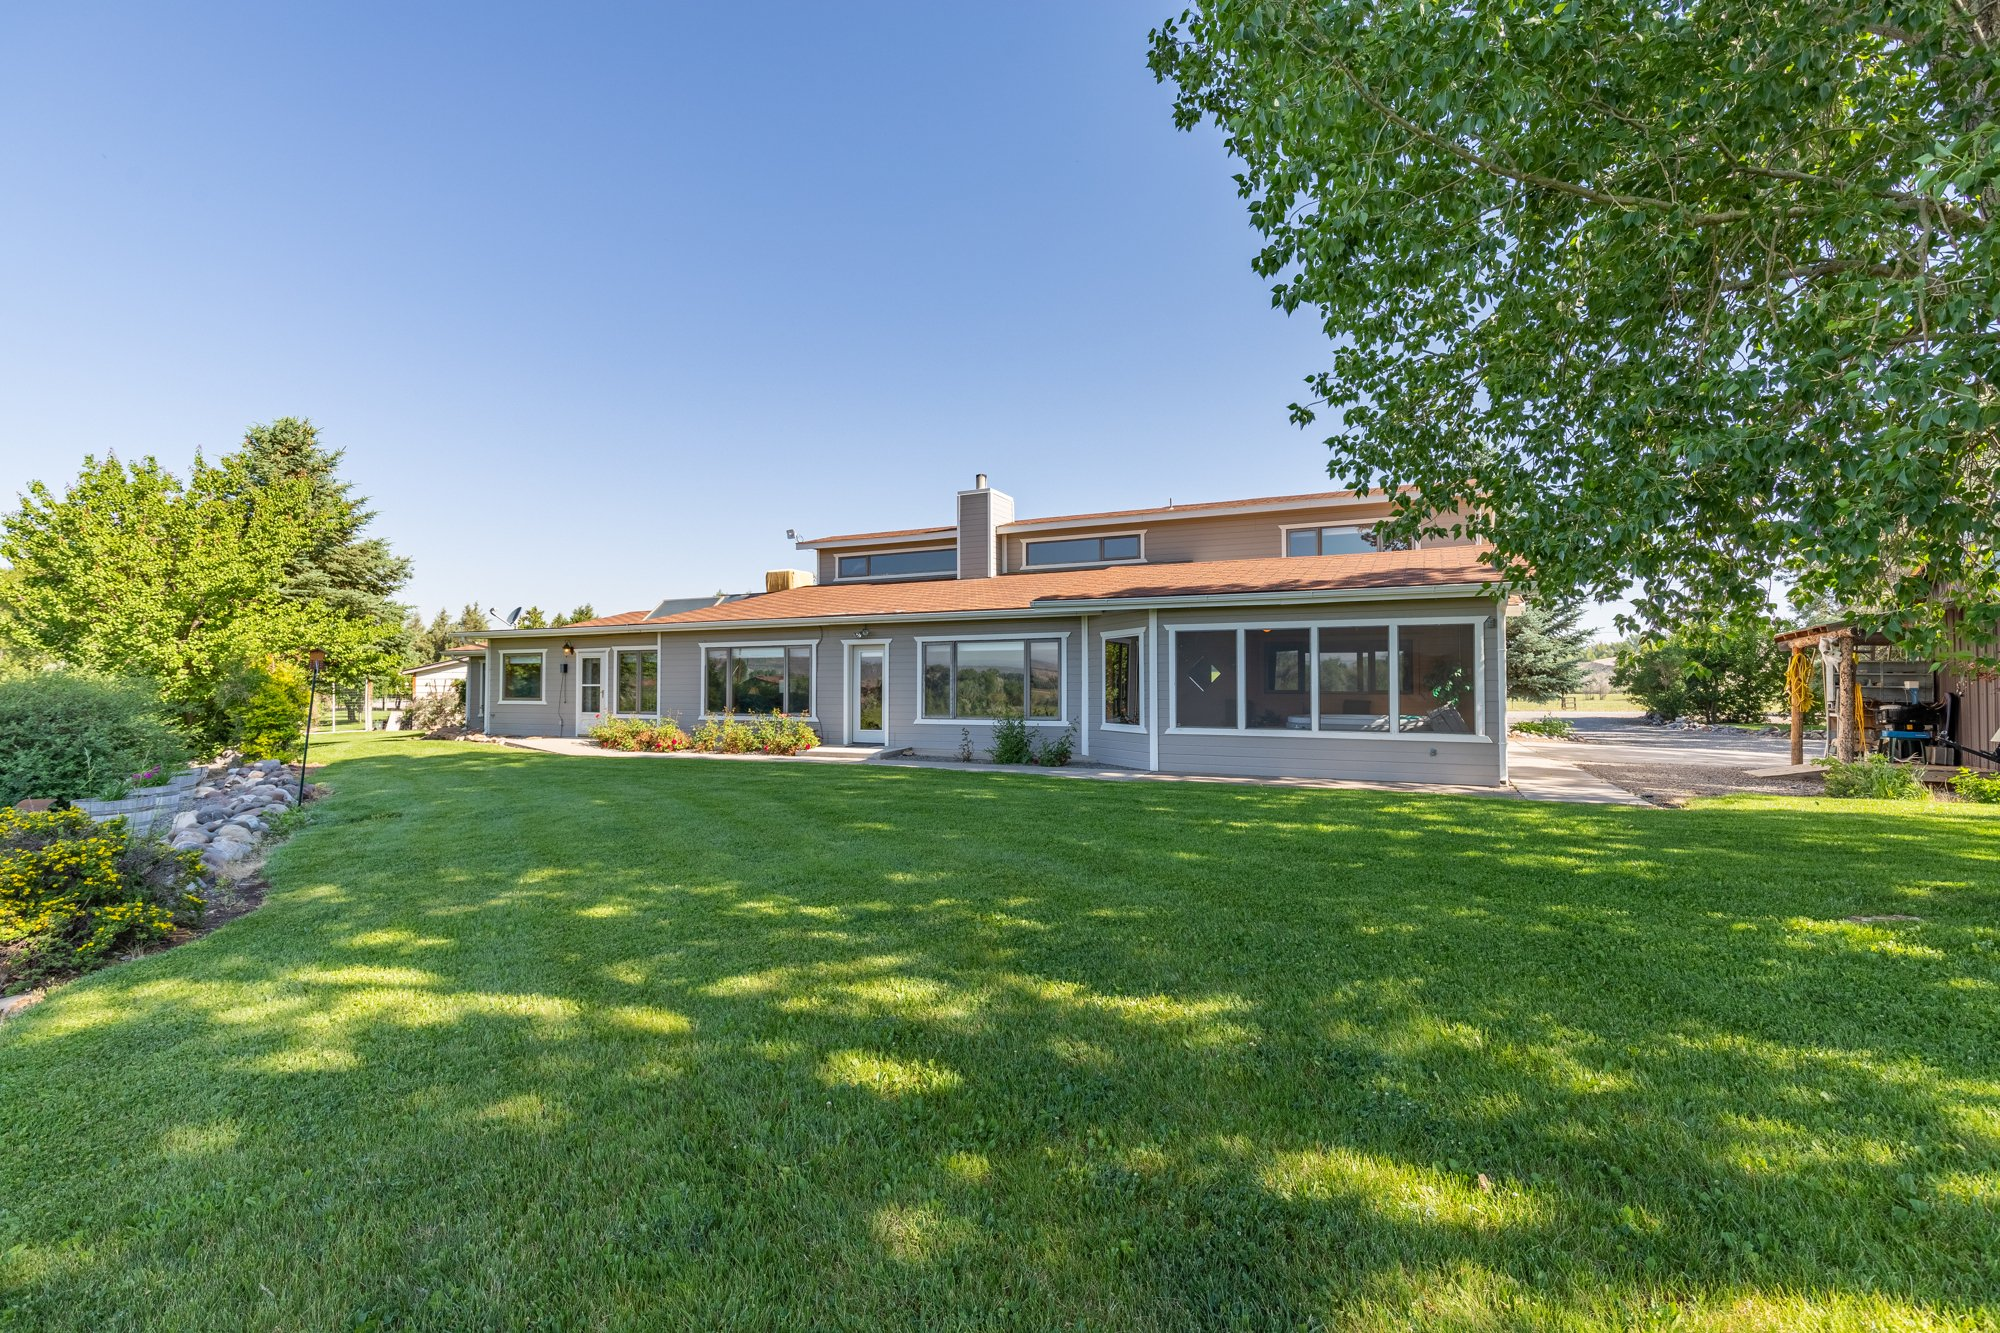 Rear of Home and Yard - 17777 6650 Rd Montrose, CO 81403 - Atha Team Country Real Estate